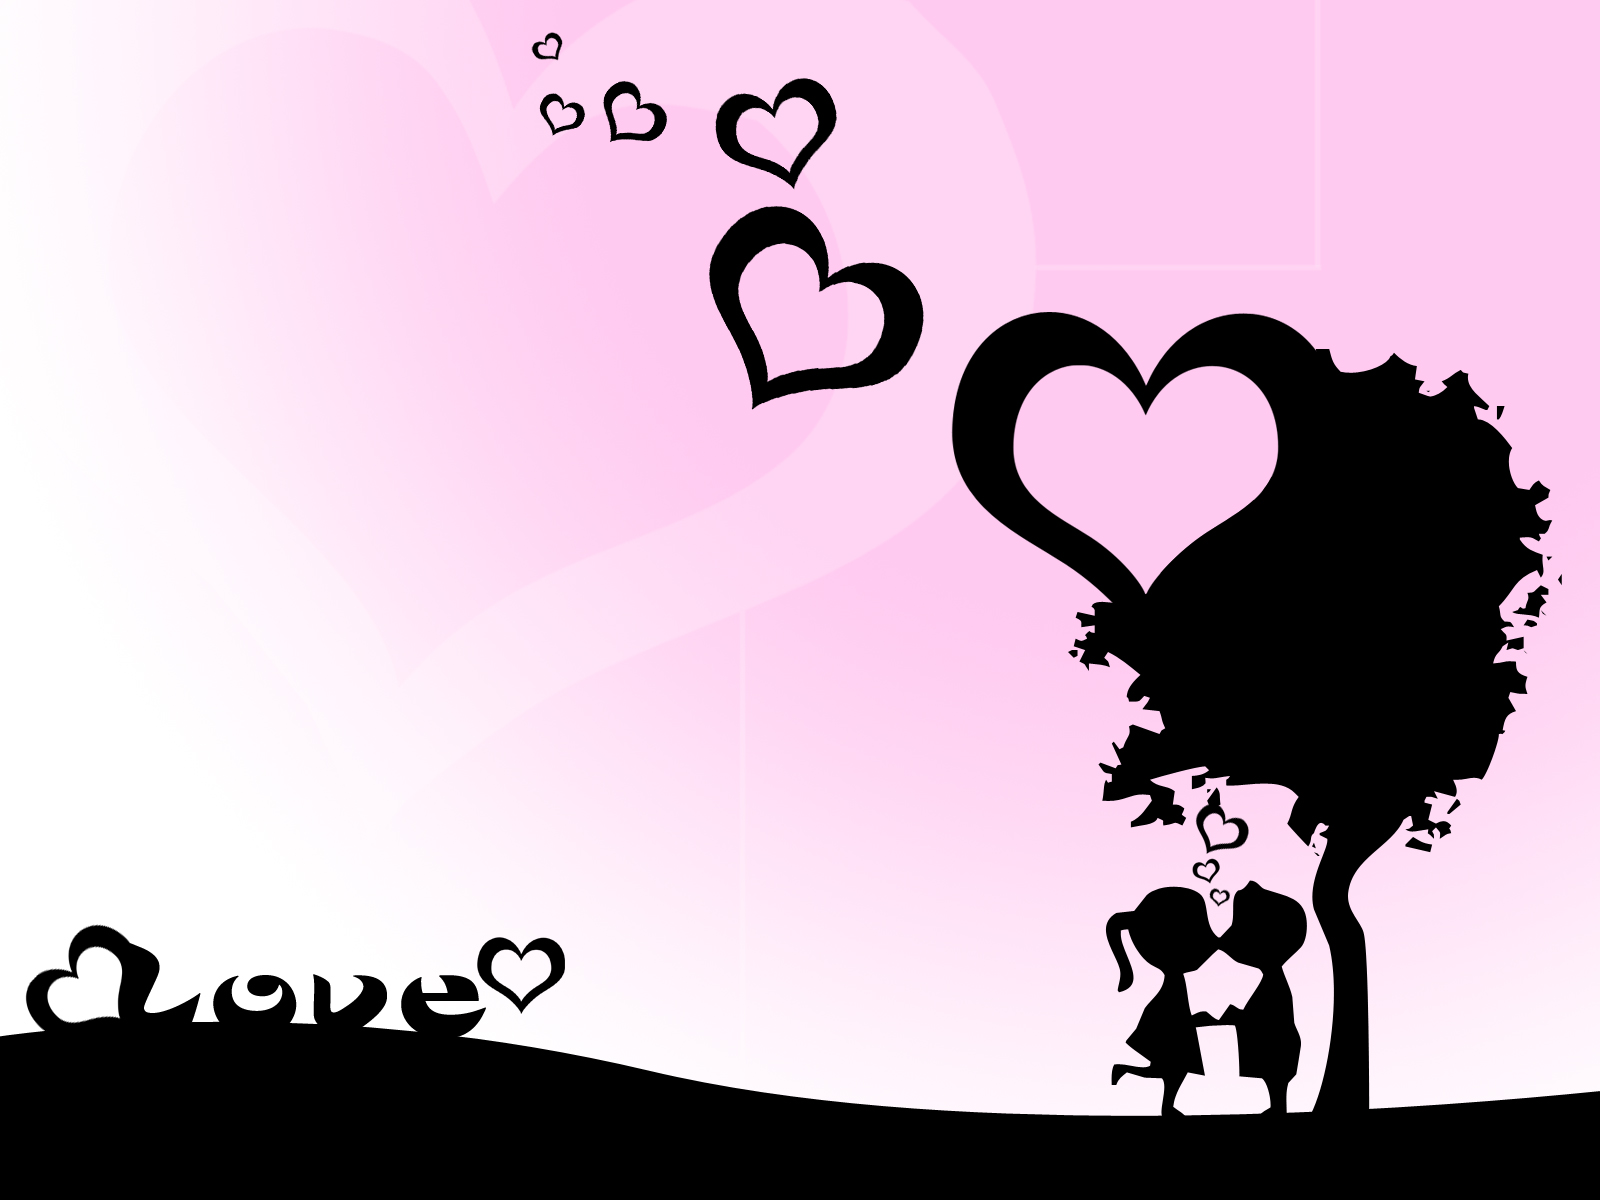 Love Wallpaper Background HD for Pc Mobile Phone Download Desktop 1600x1200